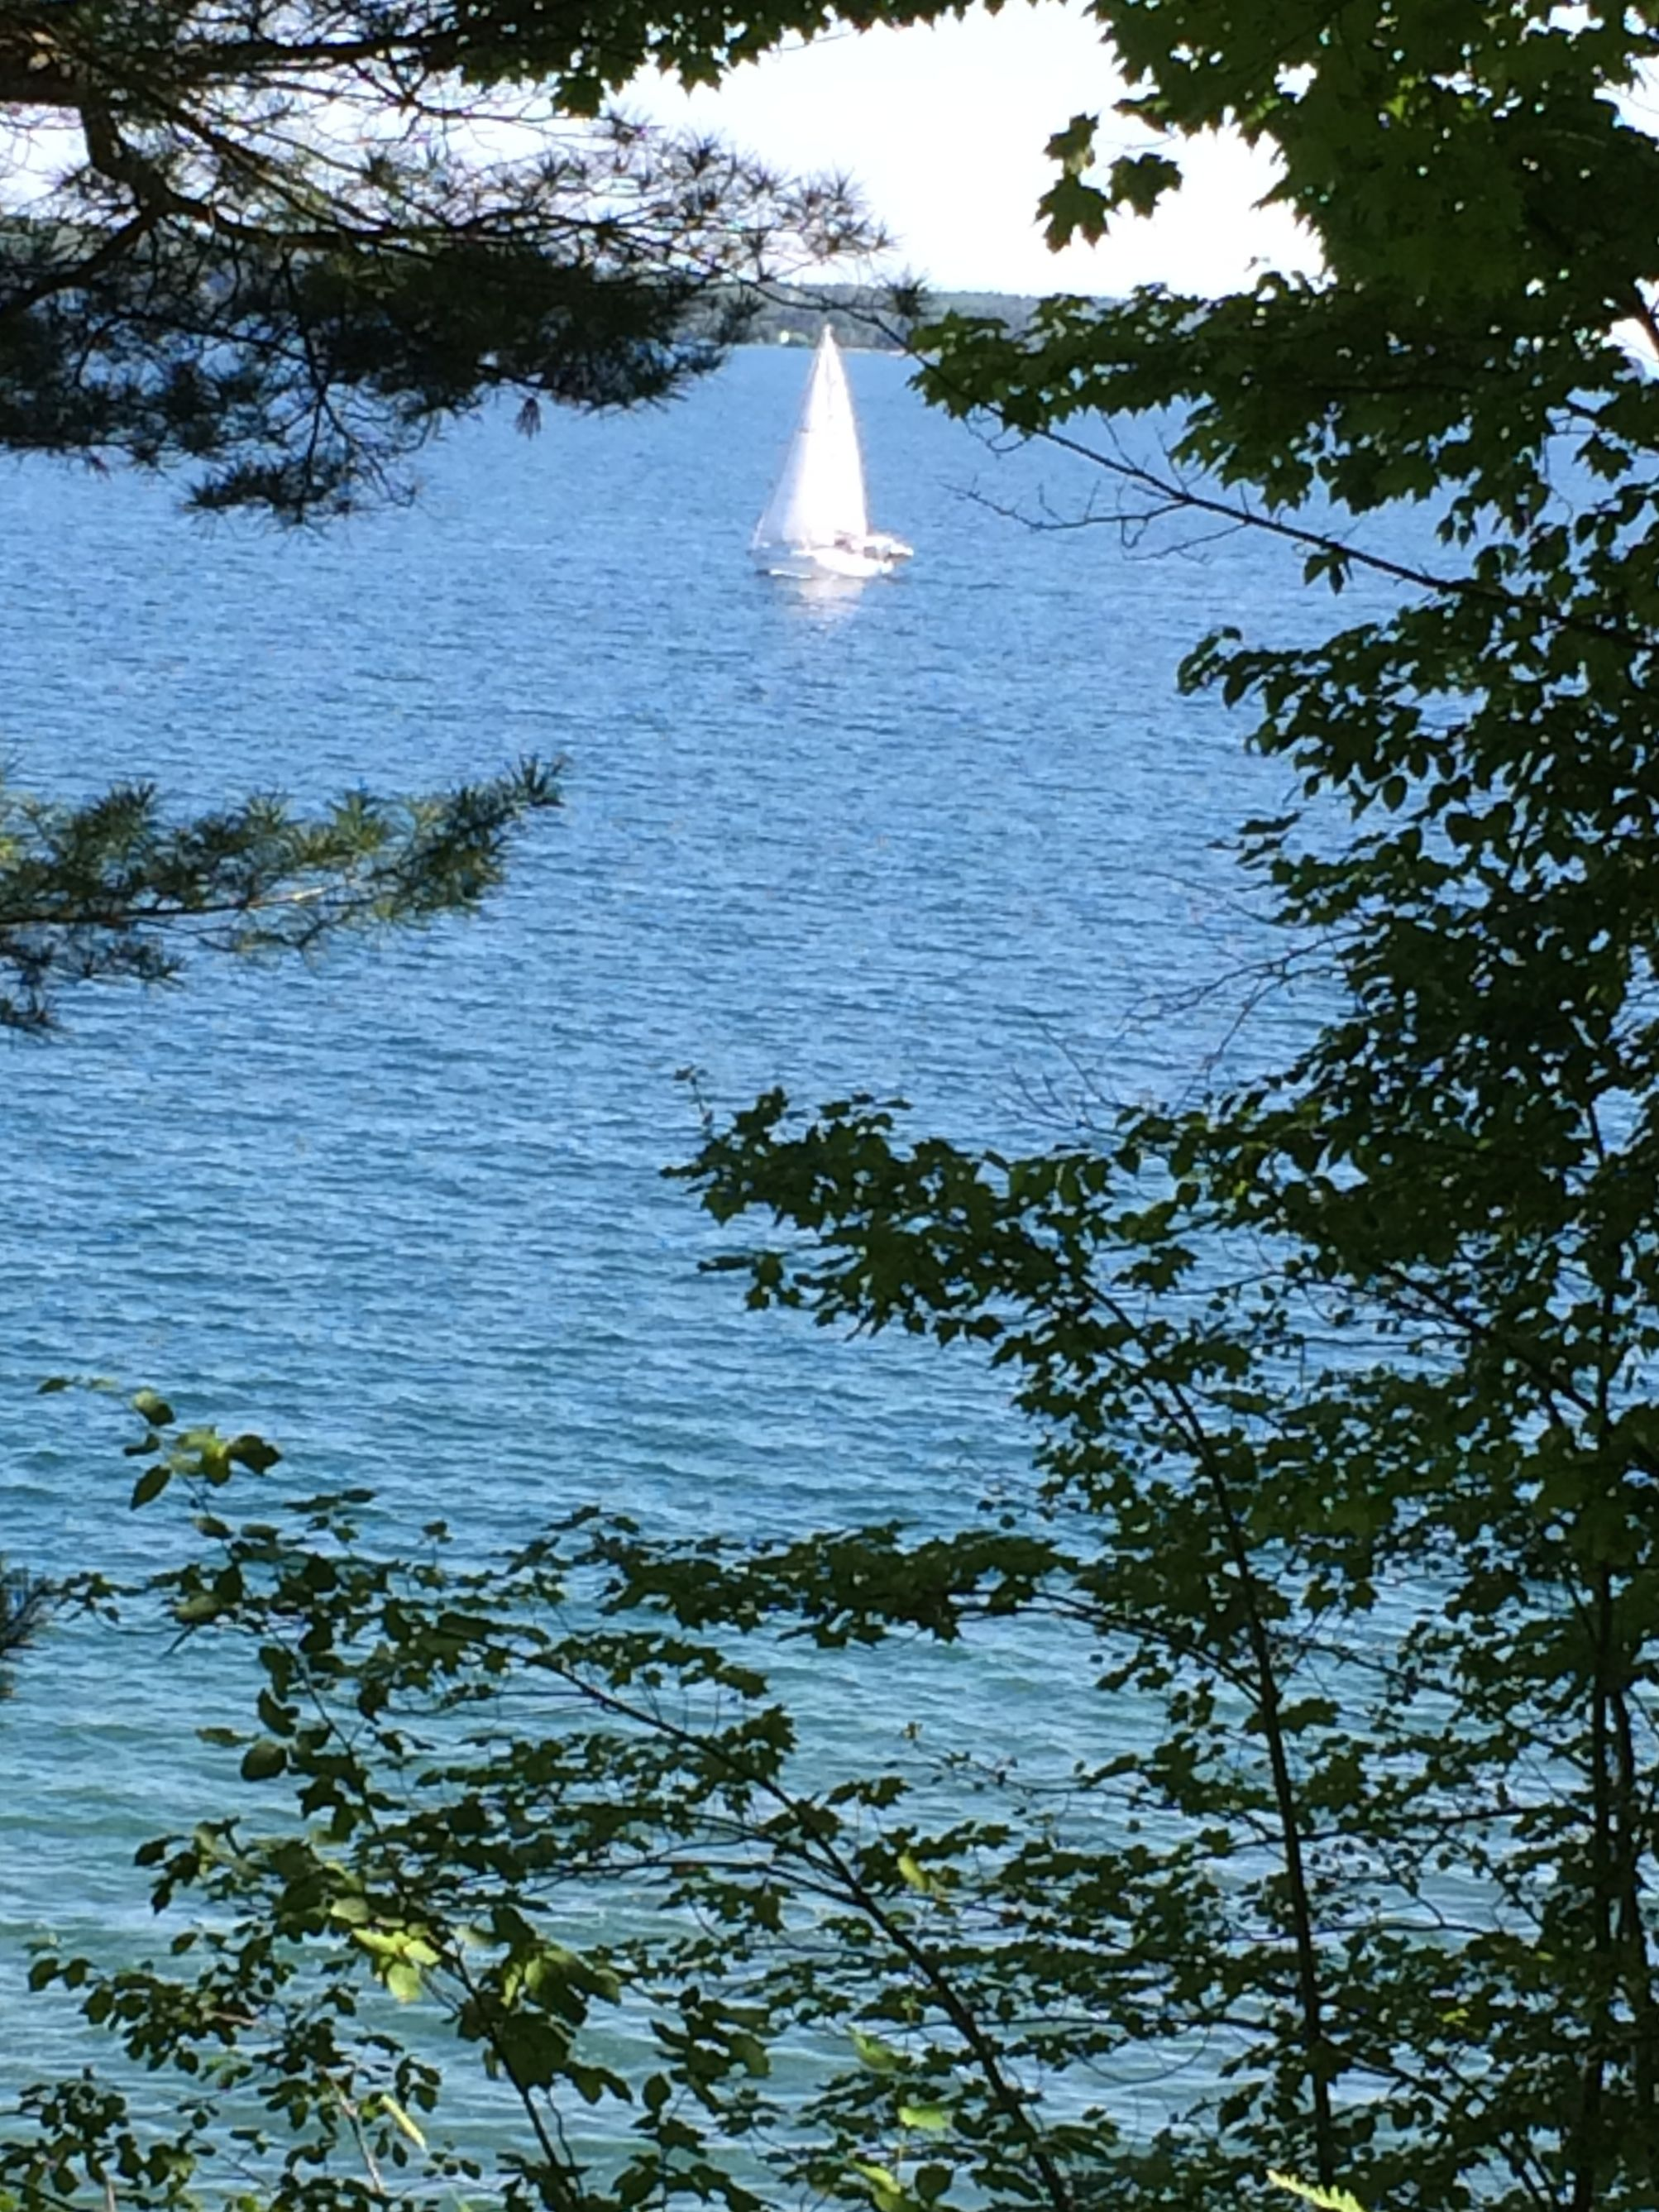 And the sailboats passed by, too.